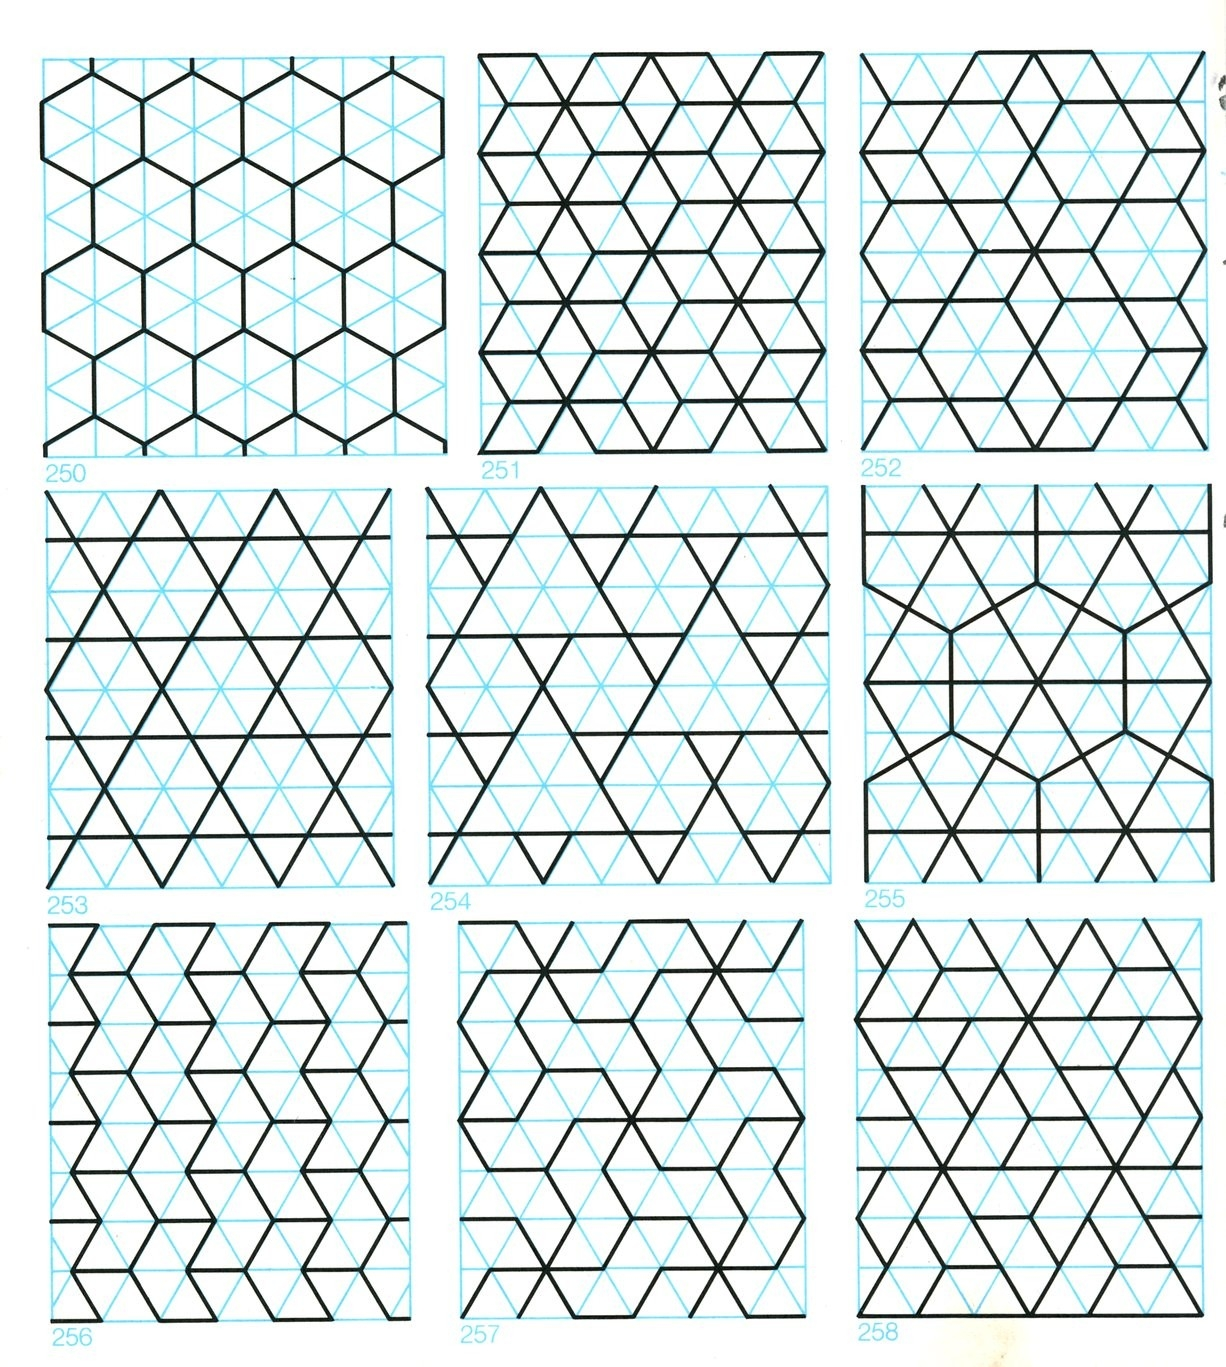 Geometric Patterns - Google Search | Graphic Design | Pinterest within Geometric Shapes Patterns 23917